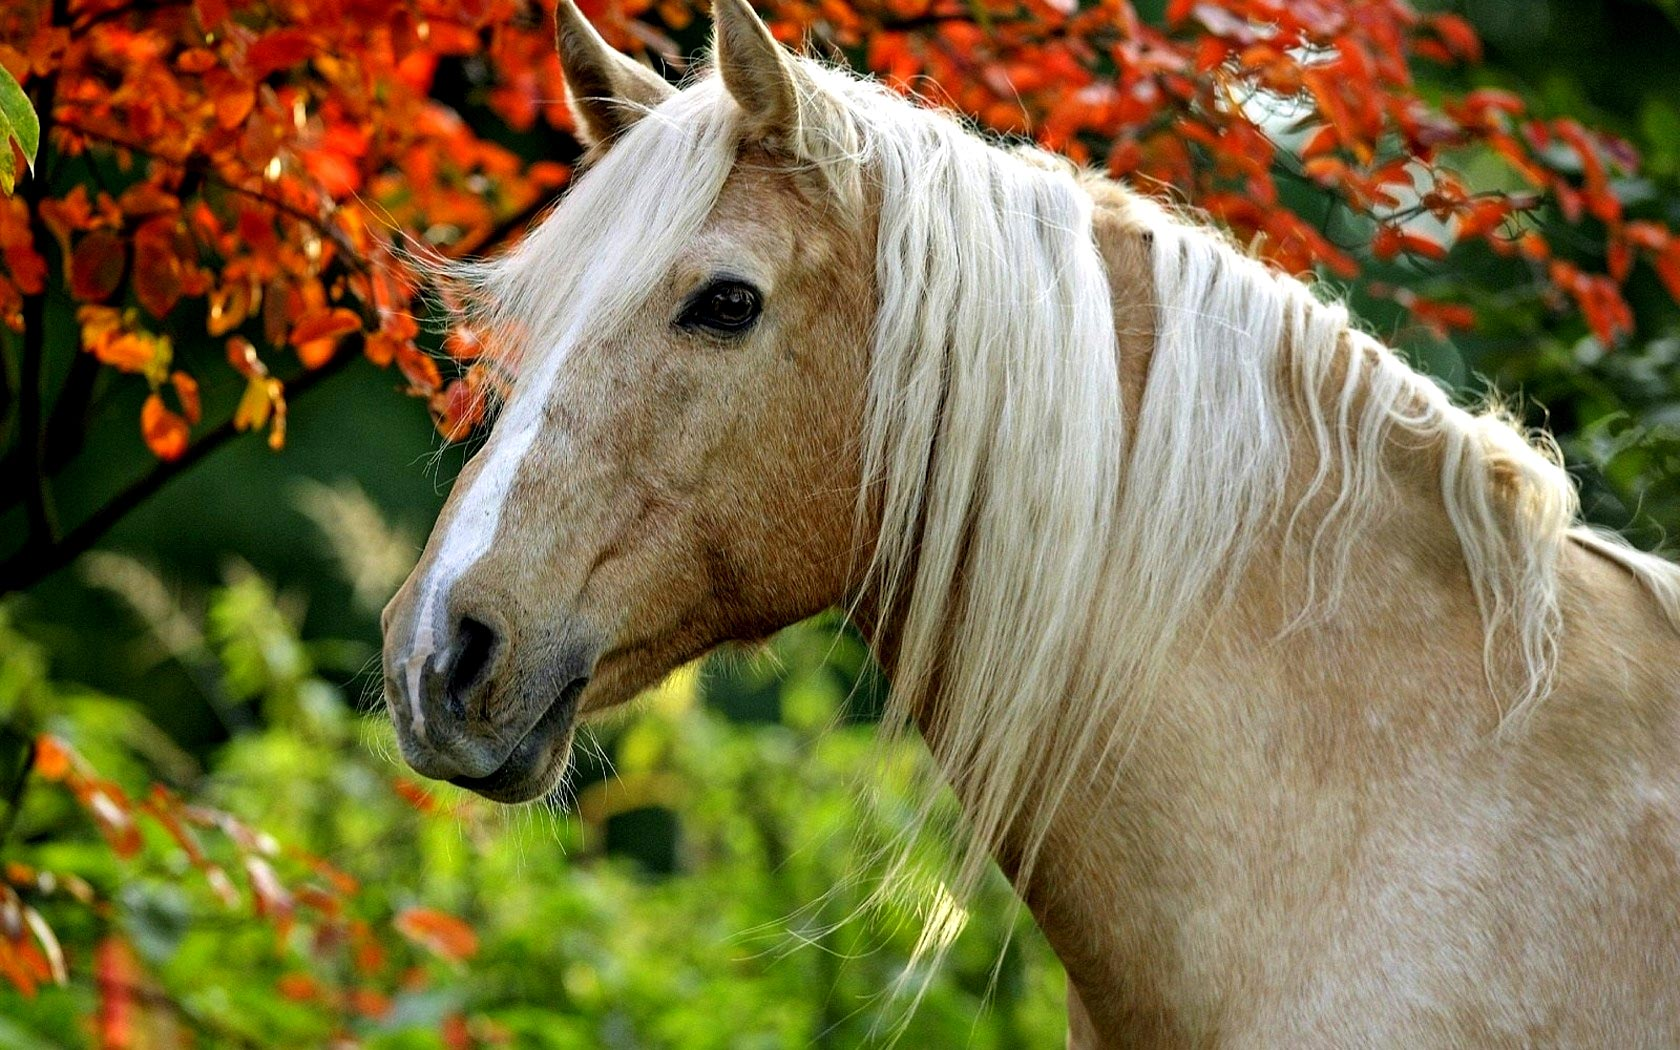 Horse backgrounds hd Wallpaper High Quality WallpapersWallpaper 1680x1050